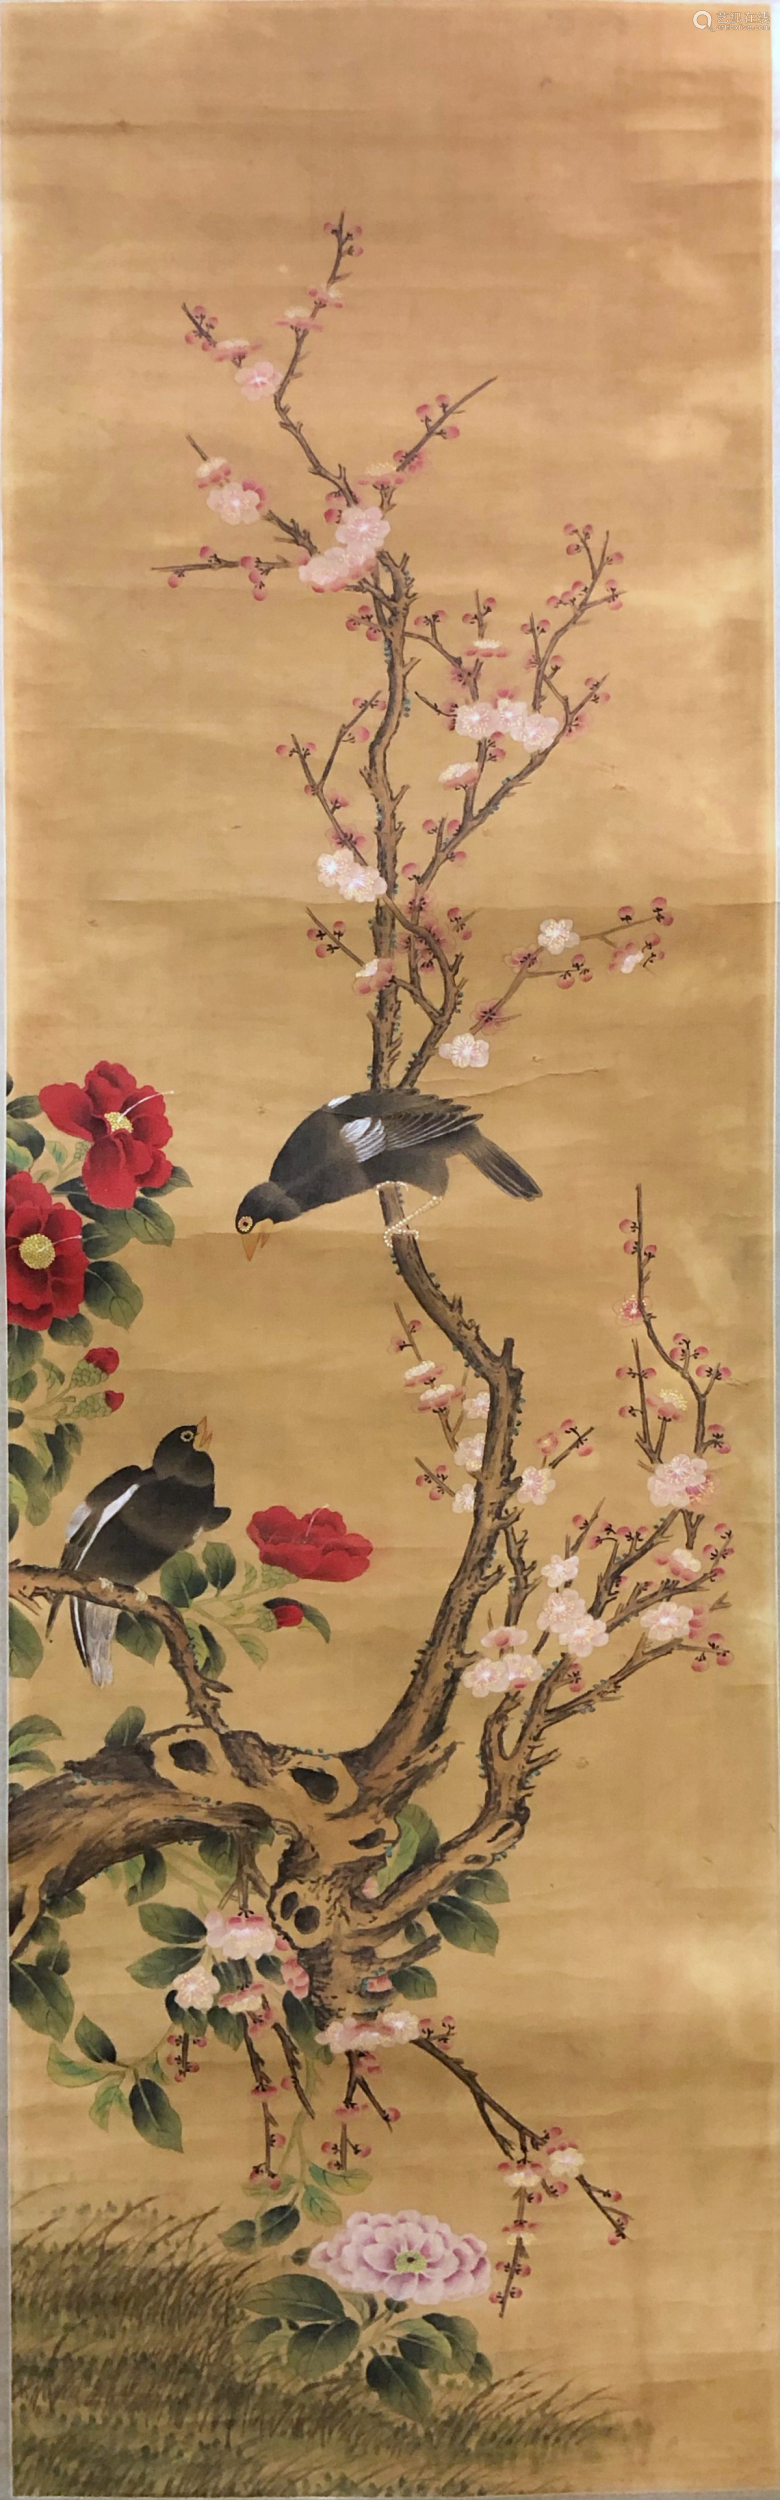 17-19TH CENTURY, UNKNOW <MEI HUA BA GE> PAINTING, QING DYNASTY